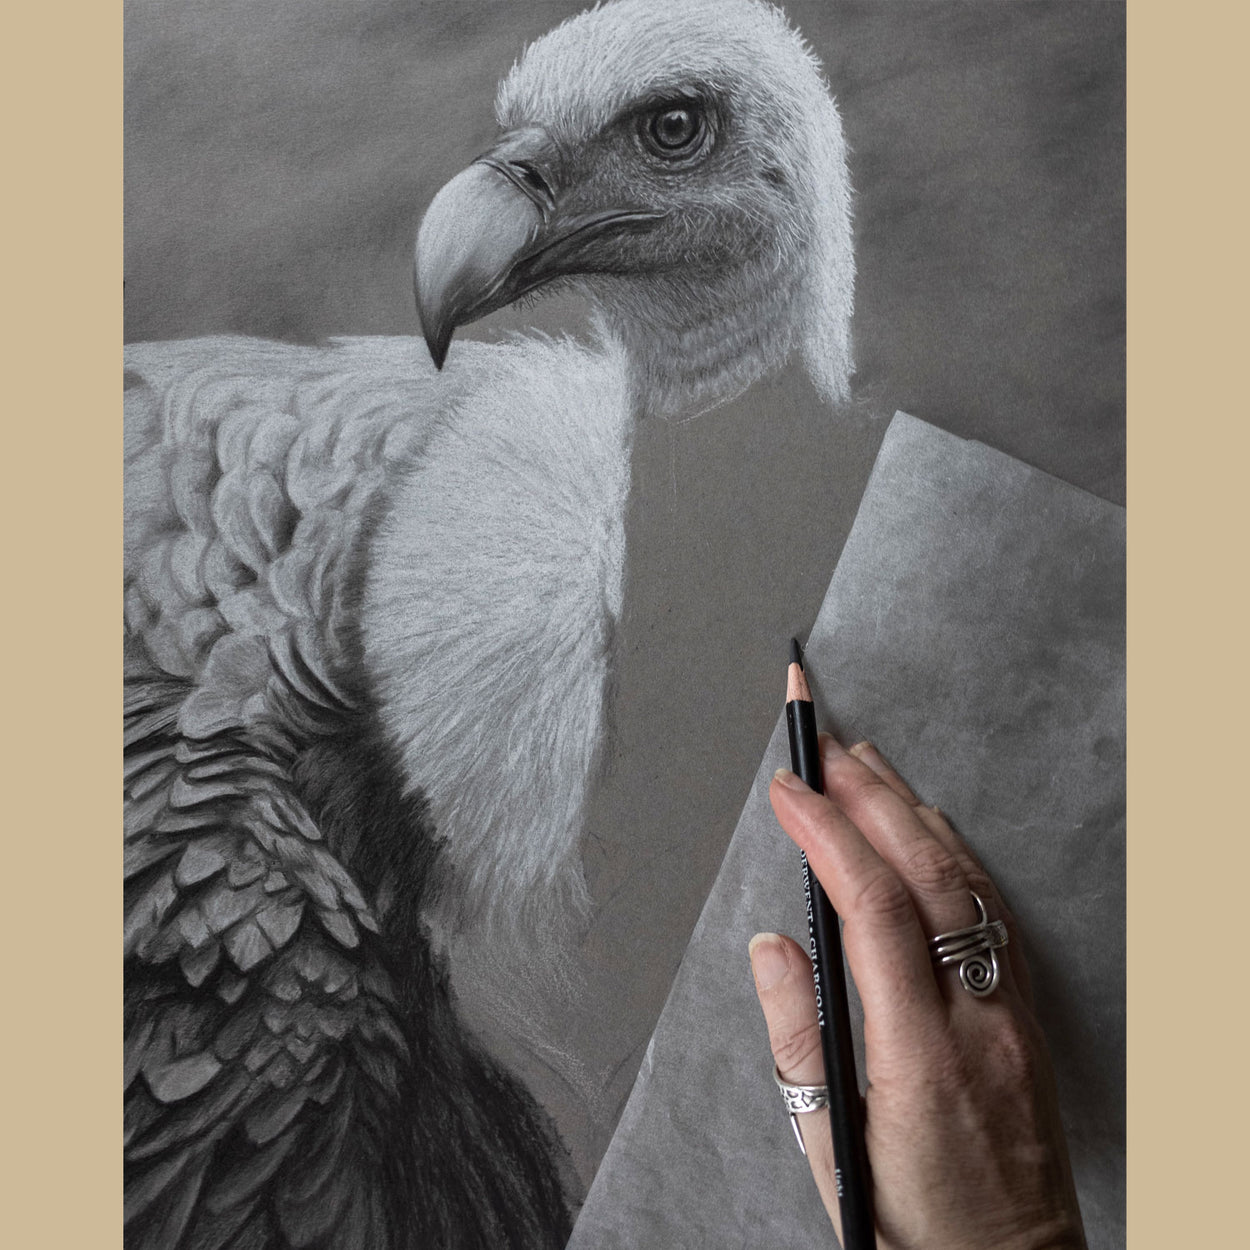 Griffon Vulture Drawing In Progress - Jill Dimond